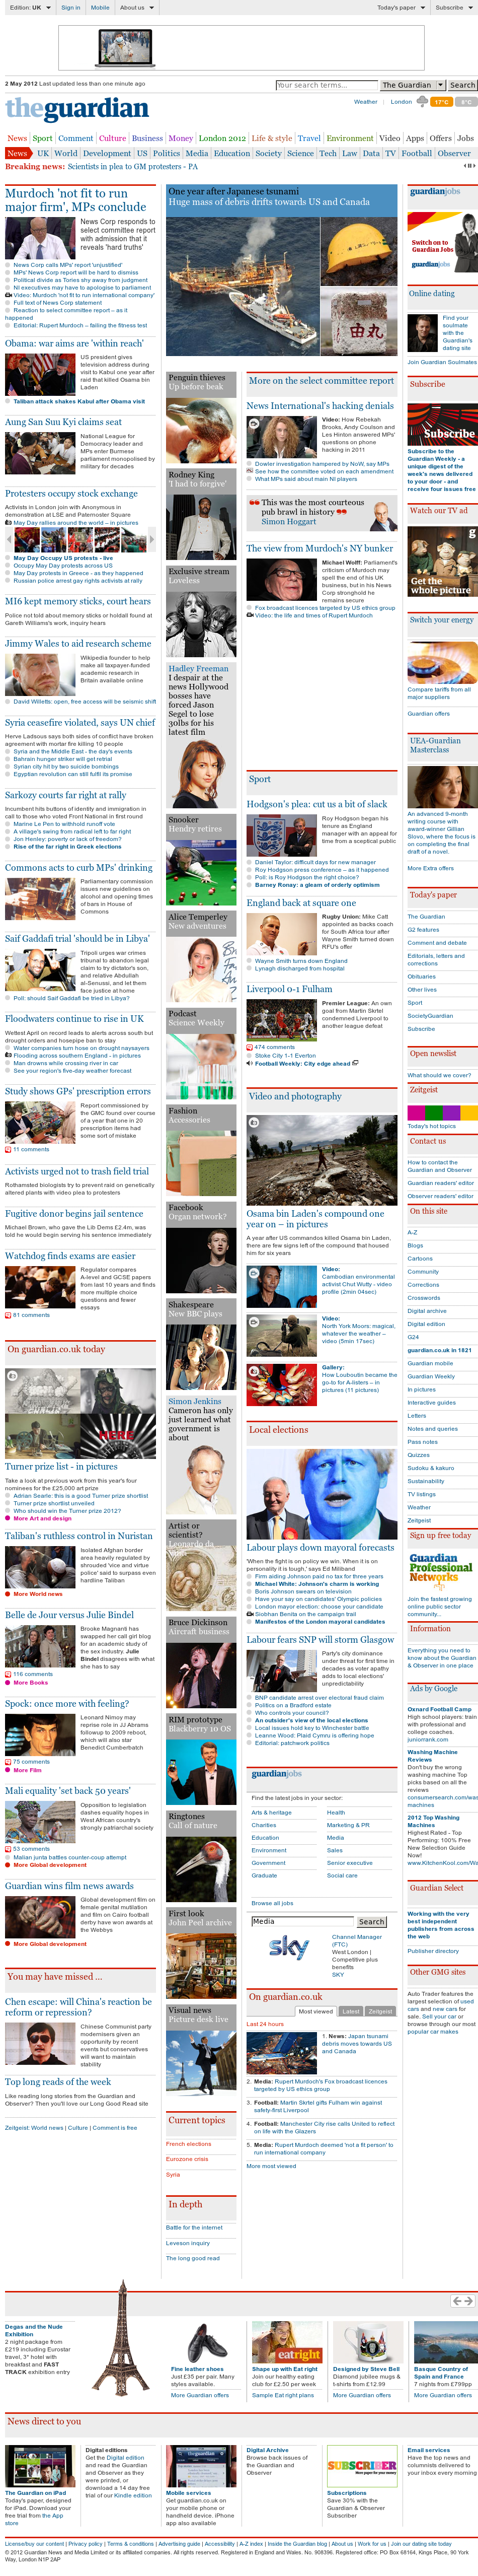 The Guardian at Wednesday May 2, 2012, 7:08 a.m. UTC